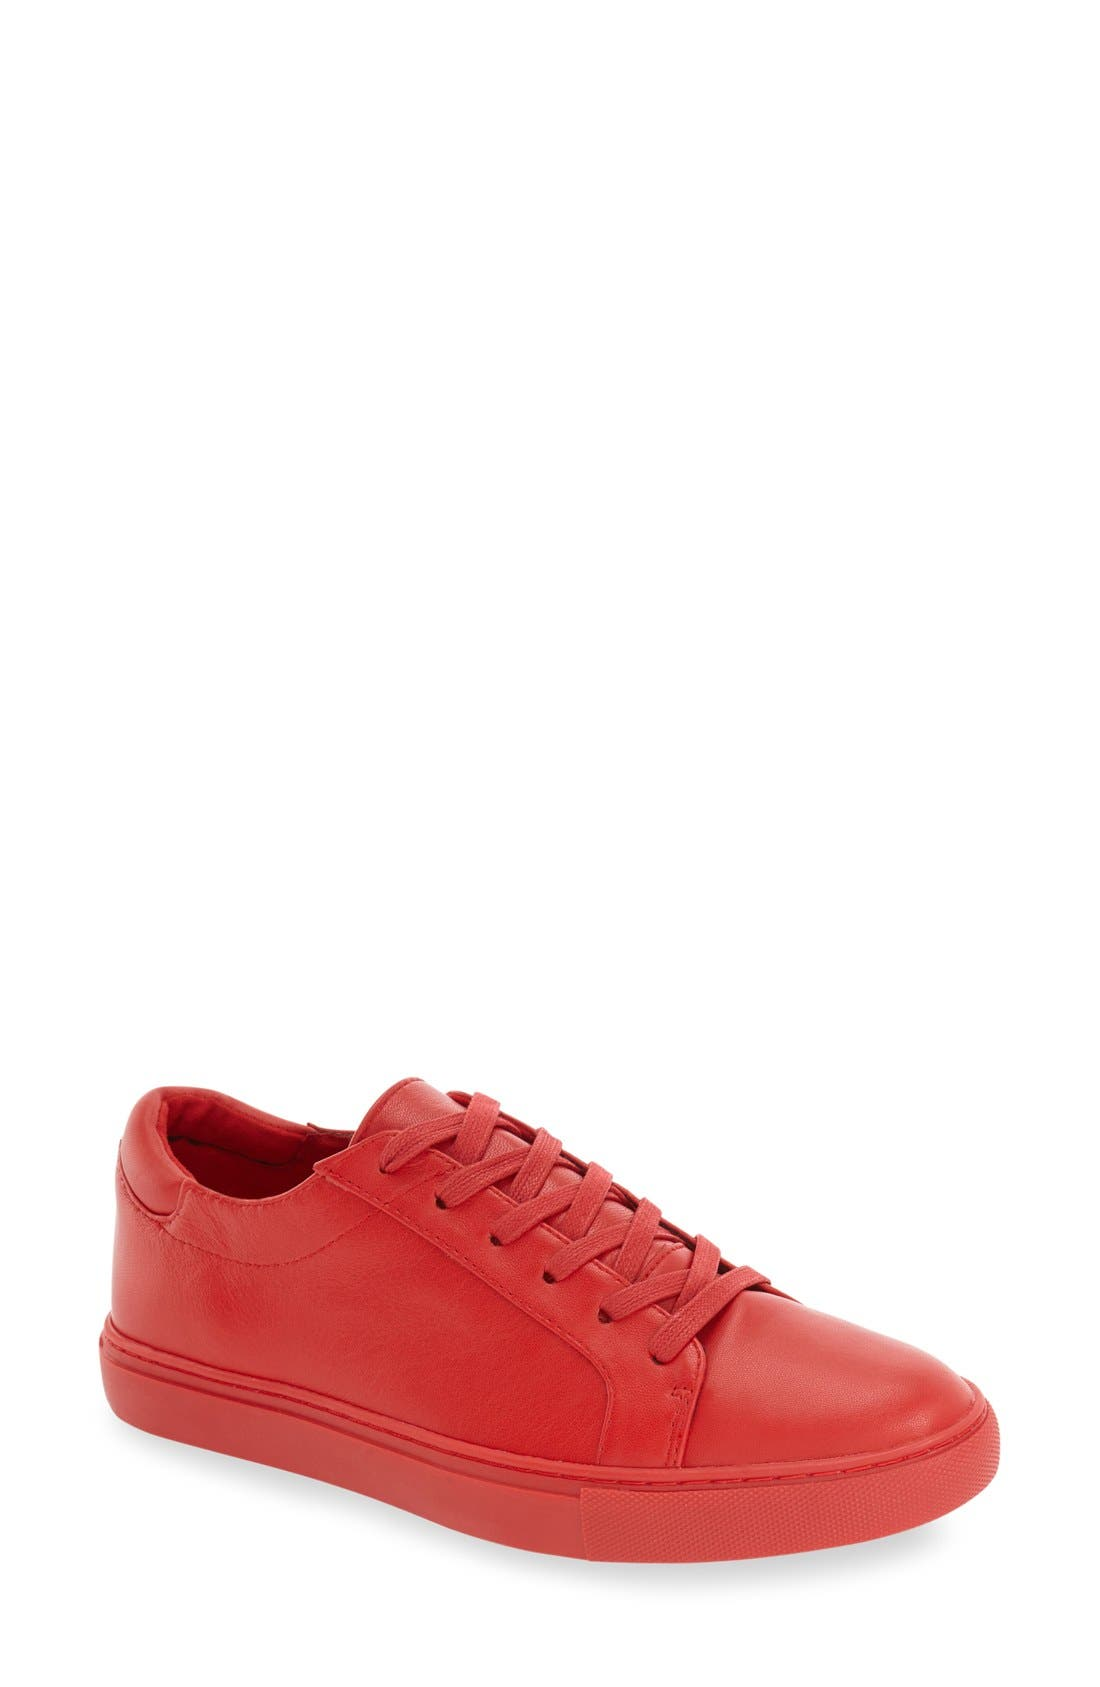 KENNETH COLE NEW YORK 'Kam' Sneaker